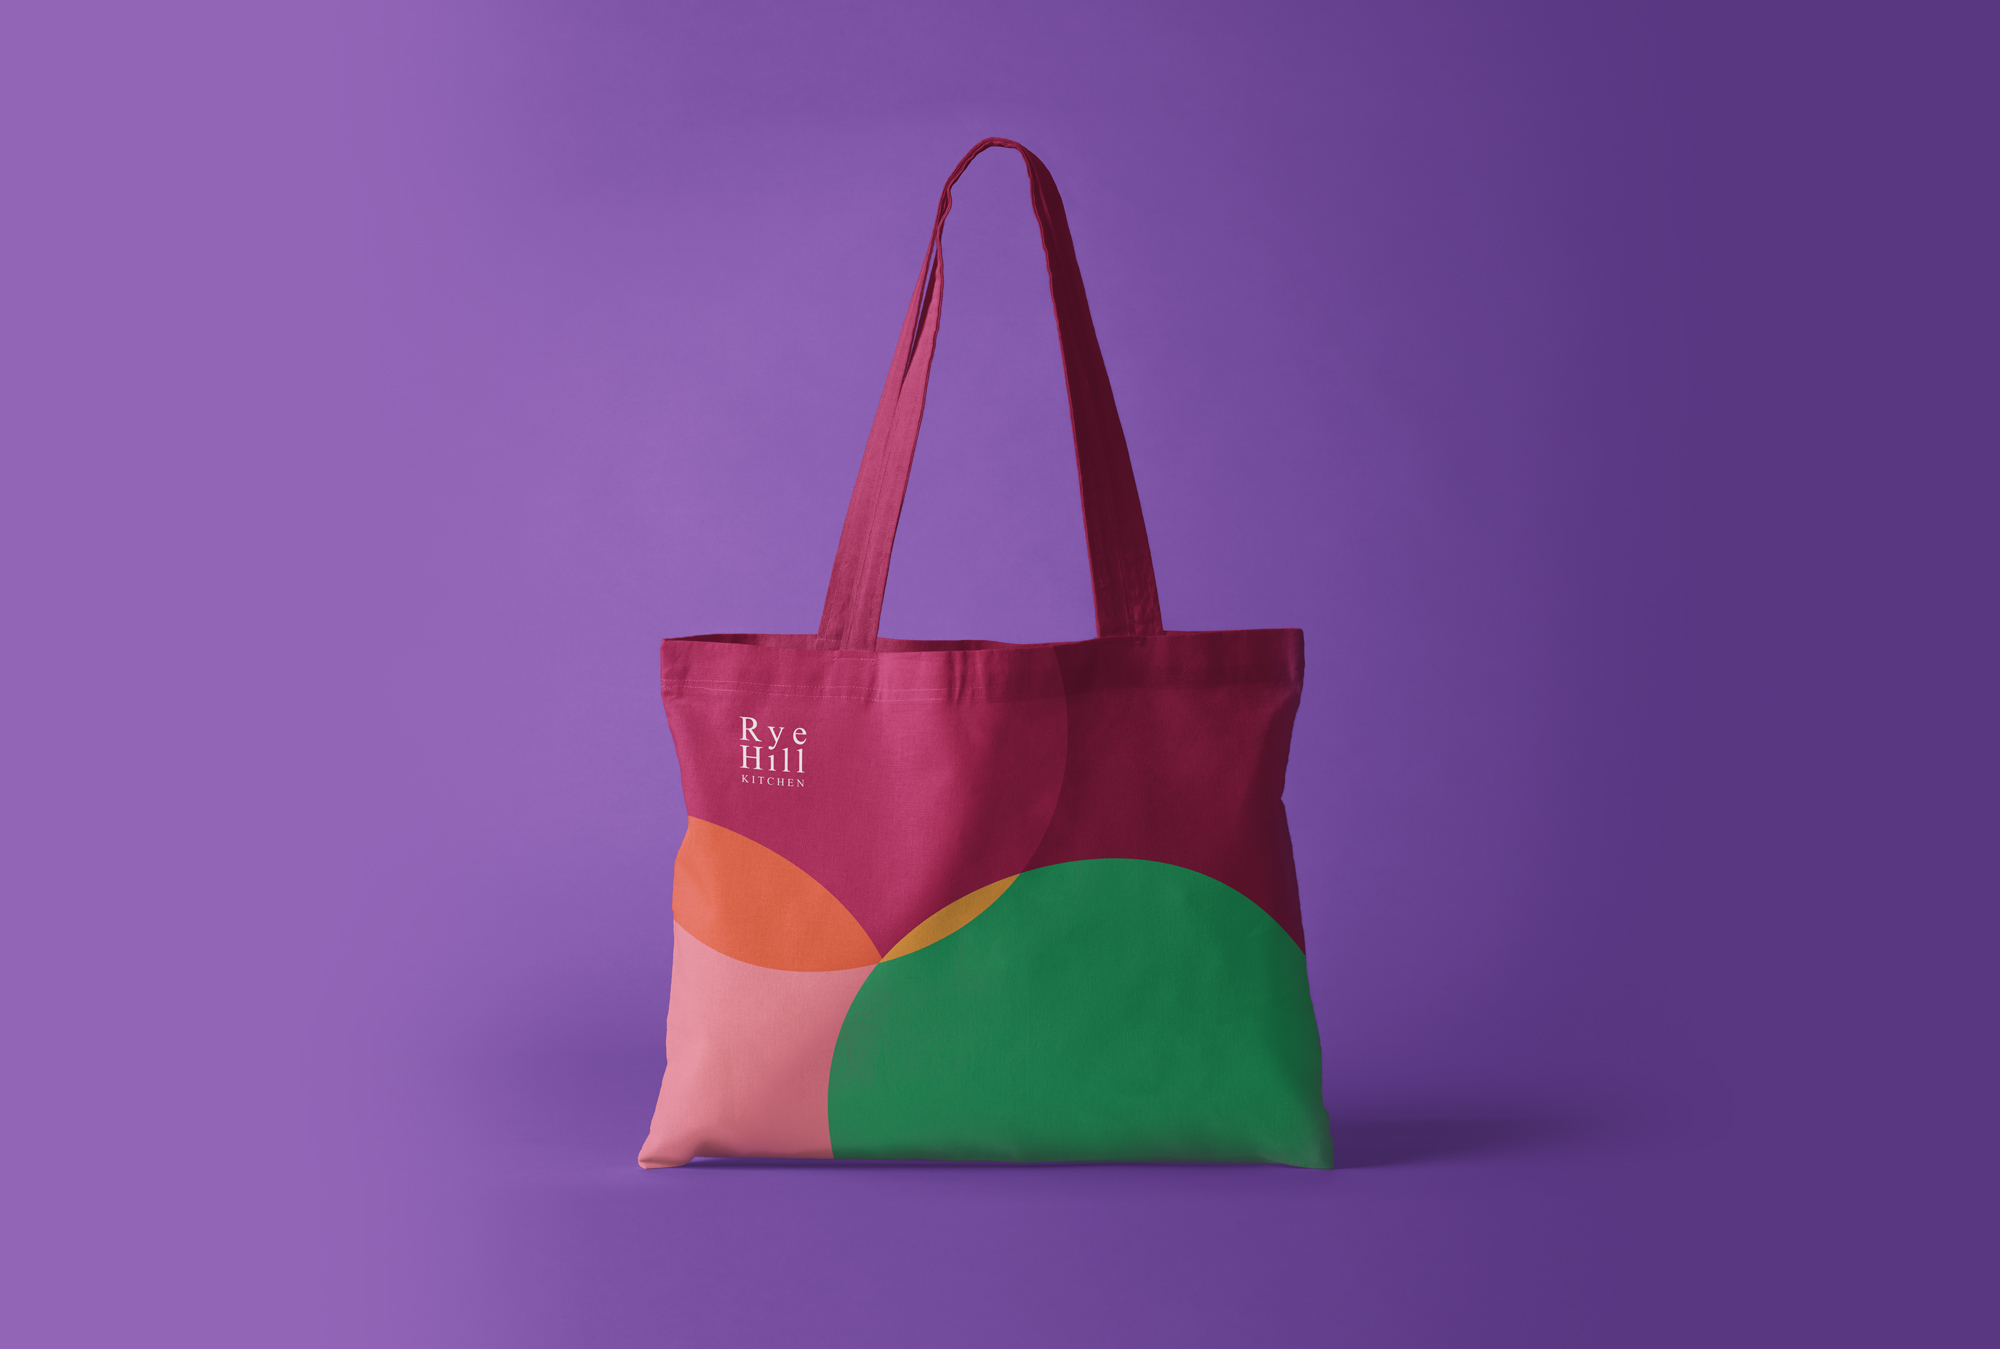 Tote-Bag-Fabric-Mockup-Vol456.jpg